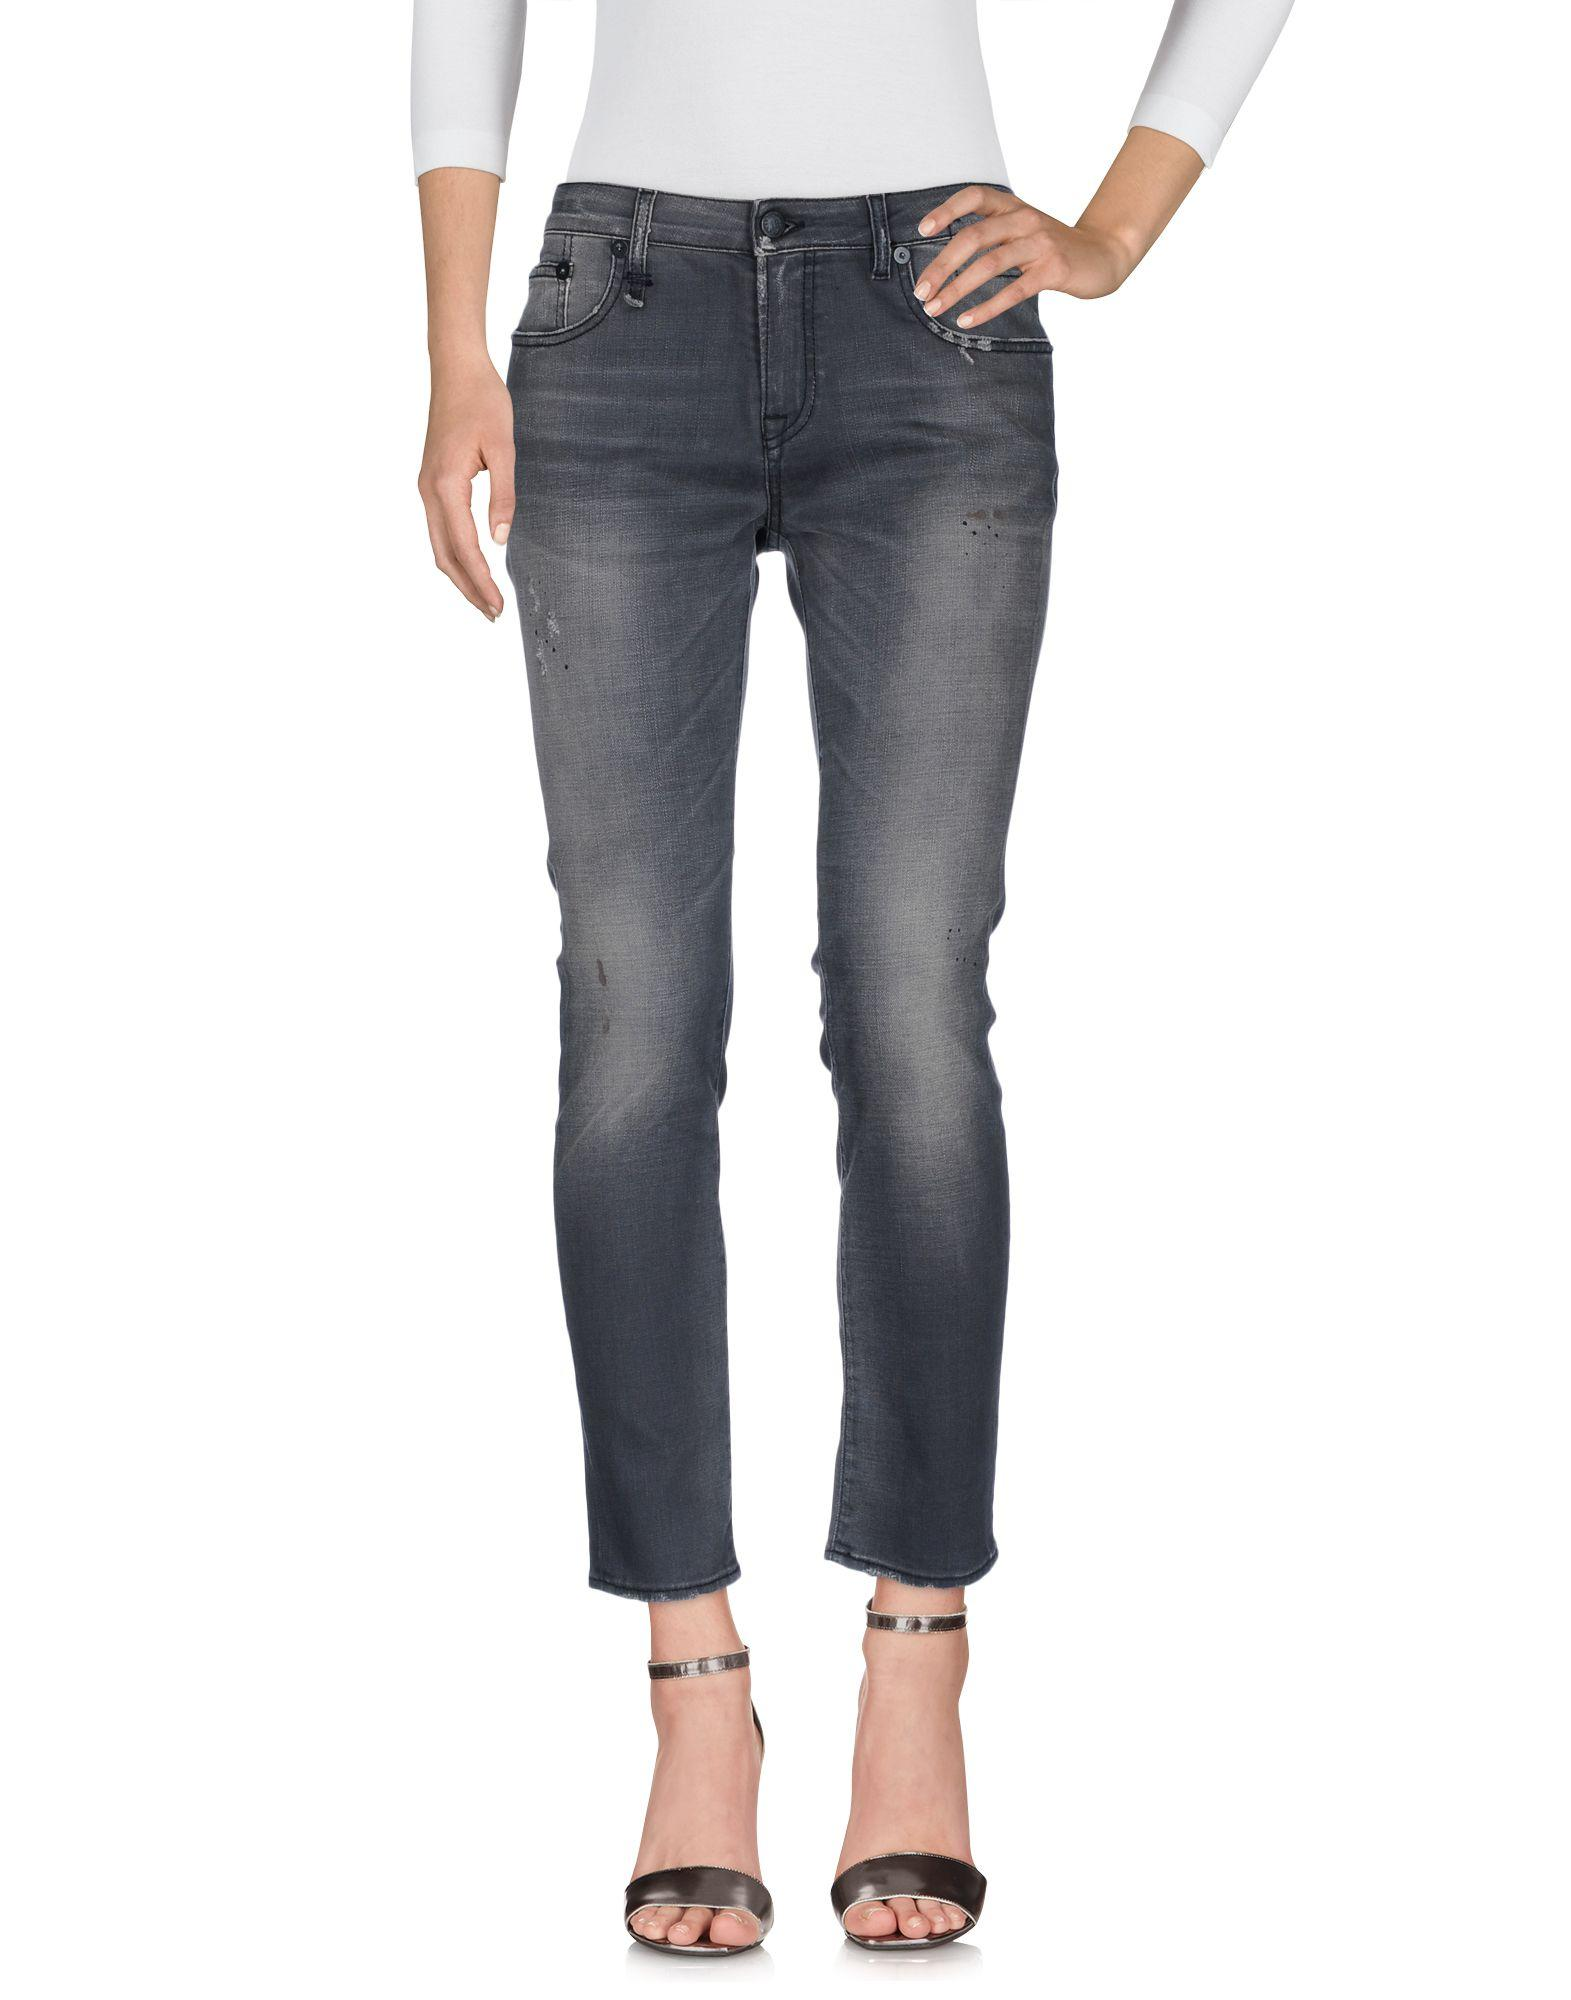 R13 Jeans In Grey